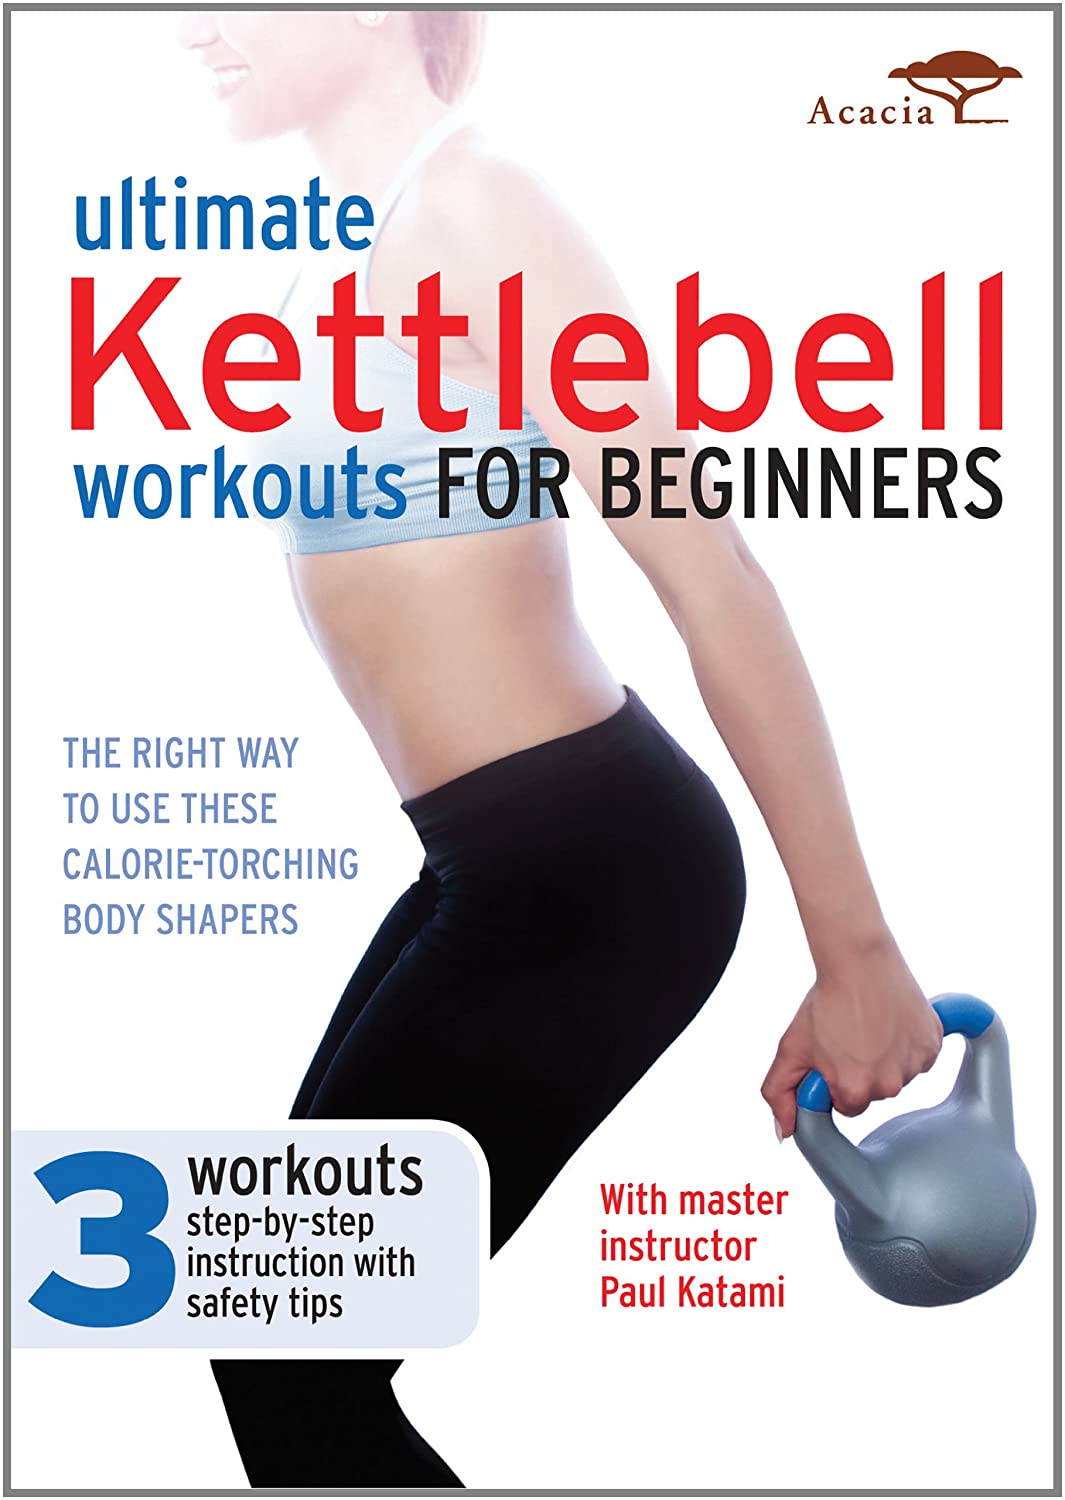 Ultimate kettlebell workouts for beginners amazon ca paul katami ernie schultz acacia dvd